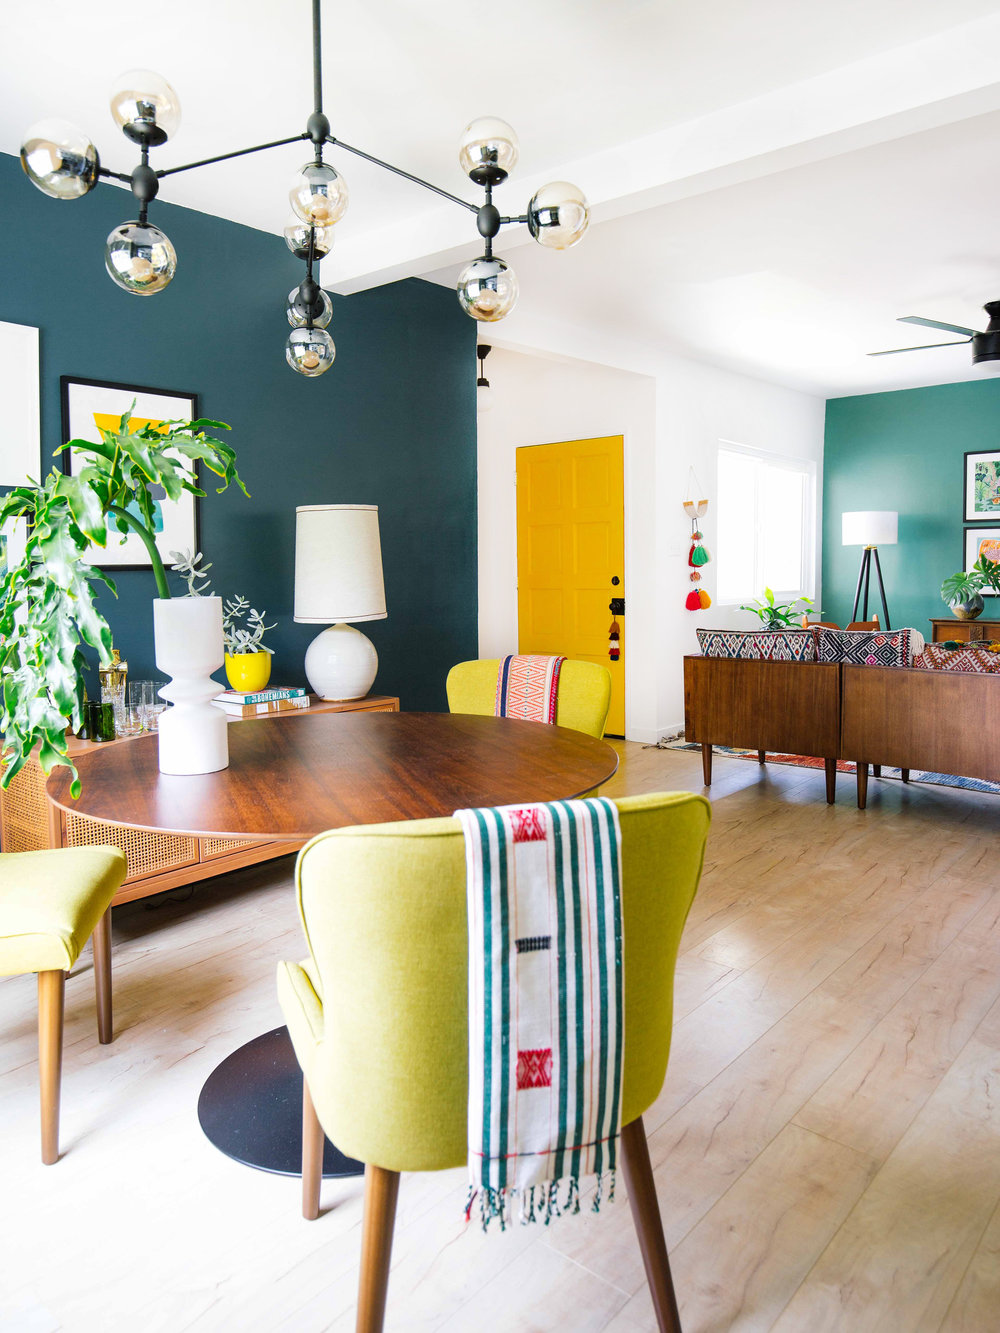 how use color open floor plan old brand new dining table accent pieces the result was even more defined and unified than could have hoped for sprinkled some darker like rug